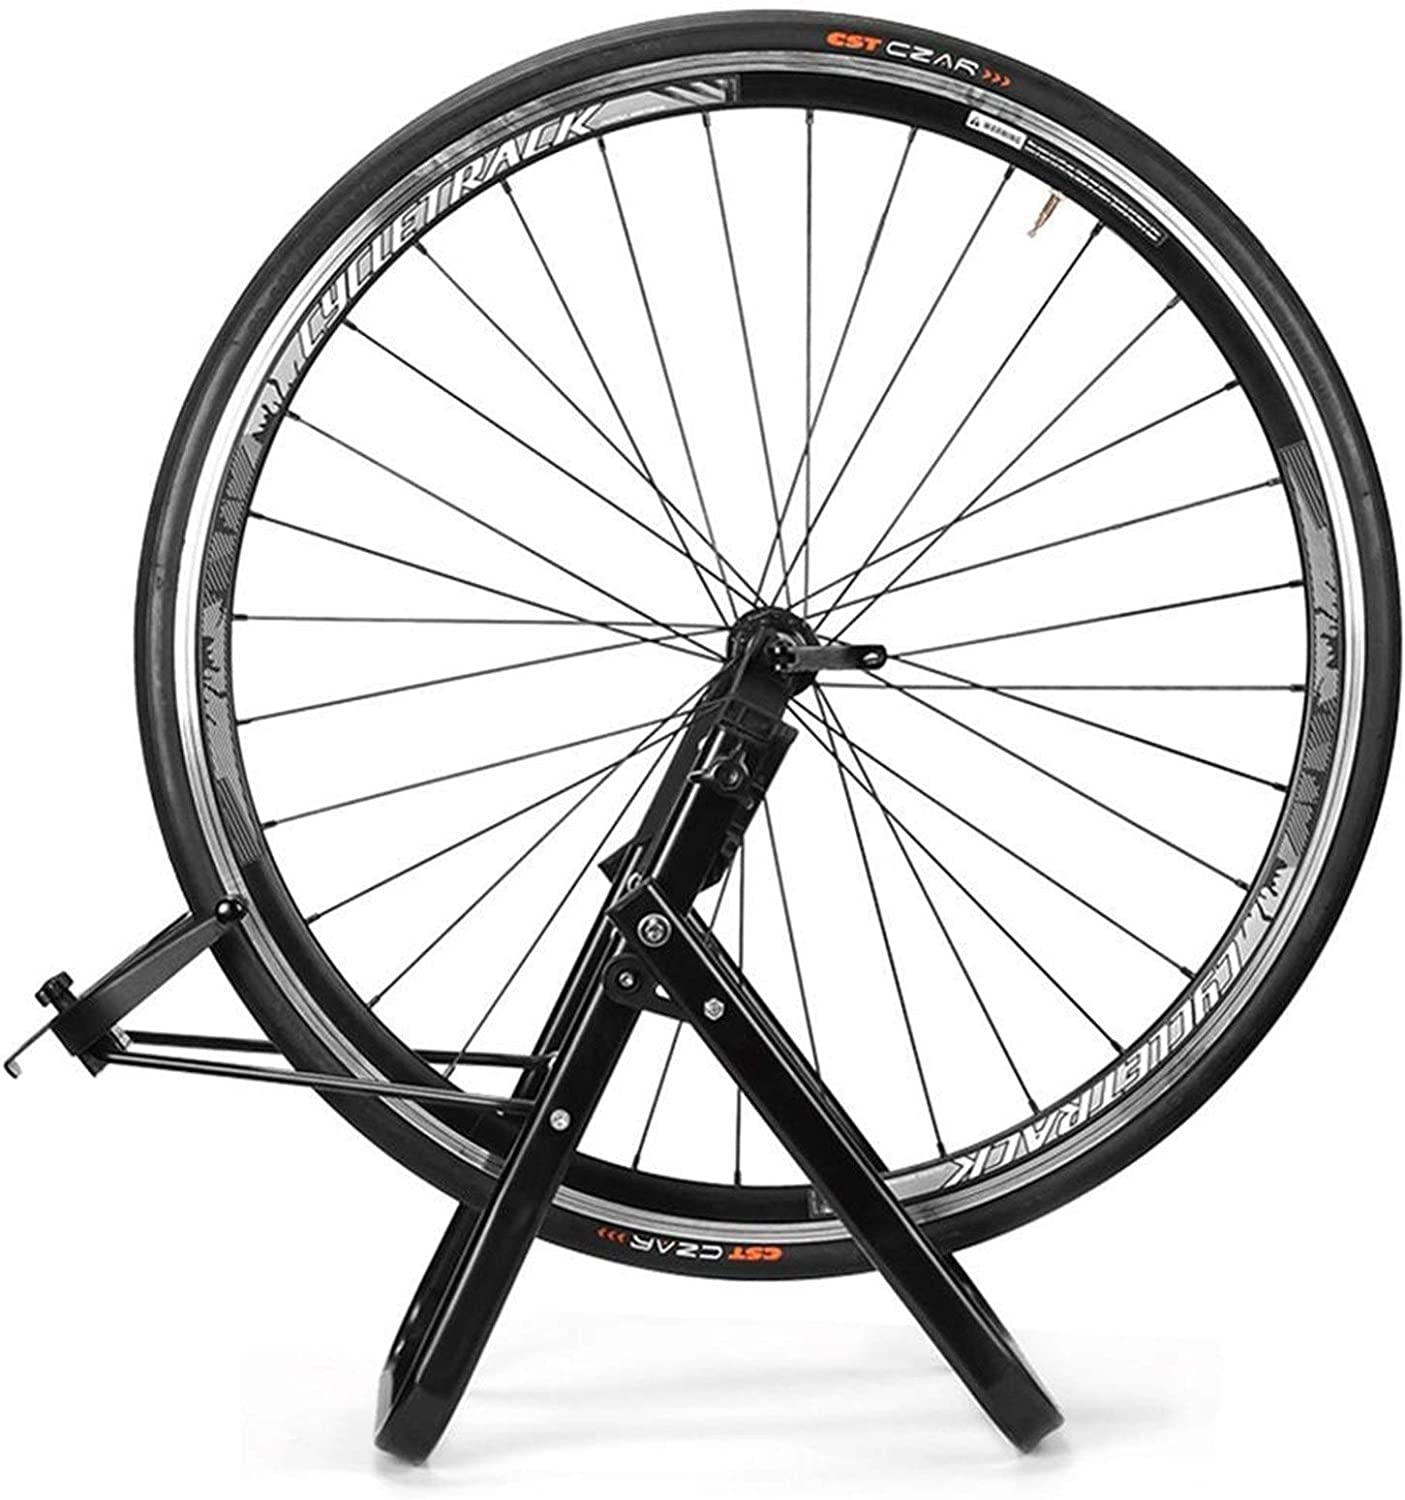 SJHY Bicycle Accessories Folding Mountain Repair Today's only Station Bi Cheap bargain Bike